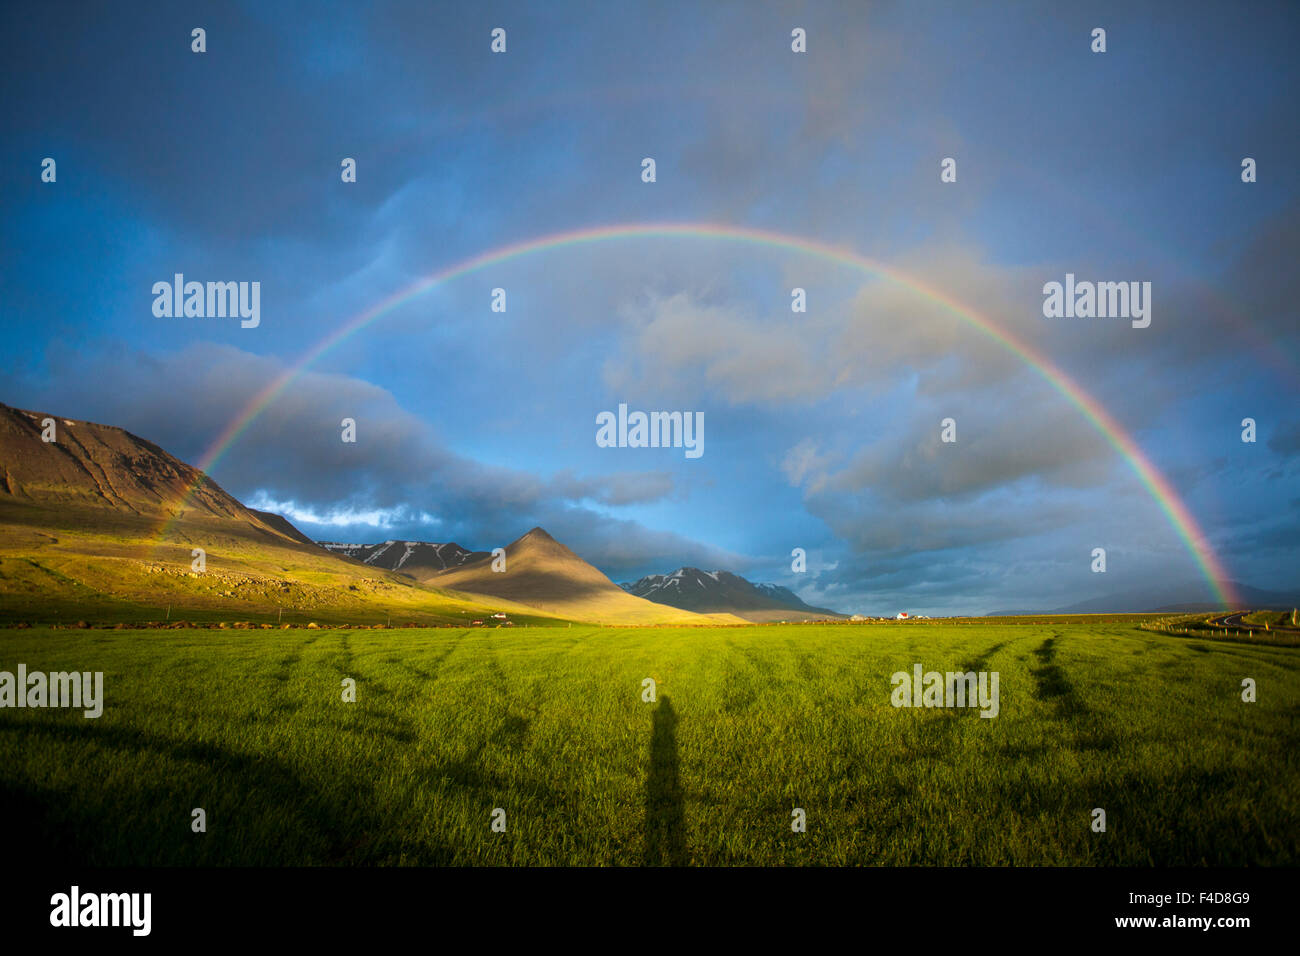 Evening rainbow over the Heradsvotn valley, Skagafjordur, Nordhurland Vestra, Iceland. - Stock Image